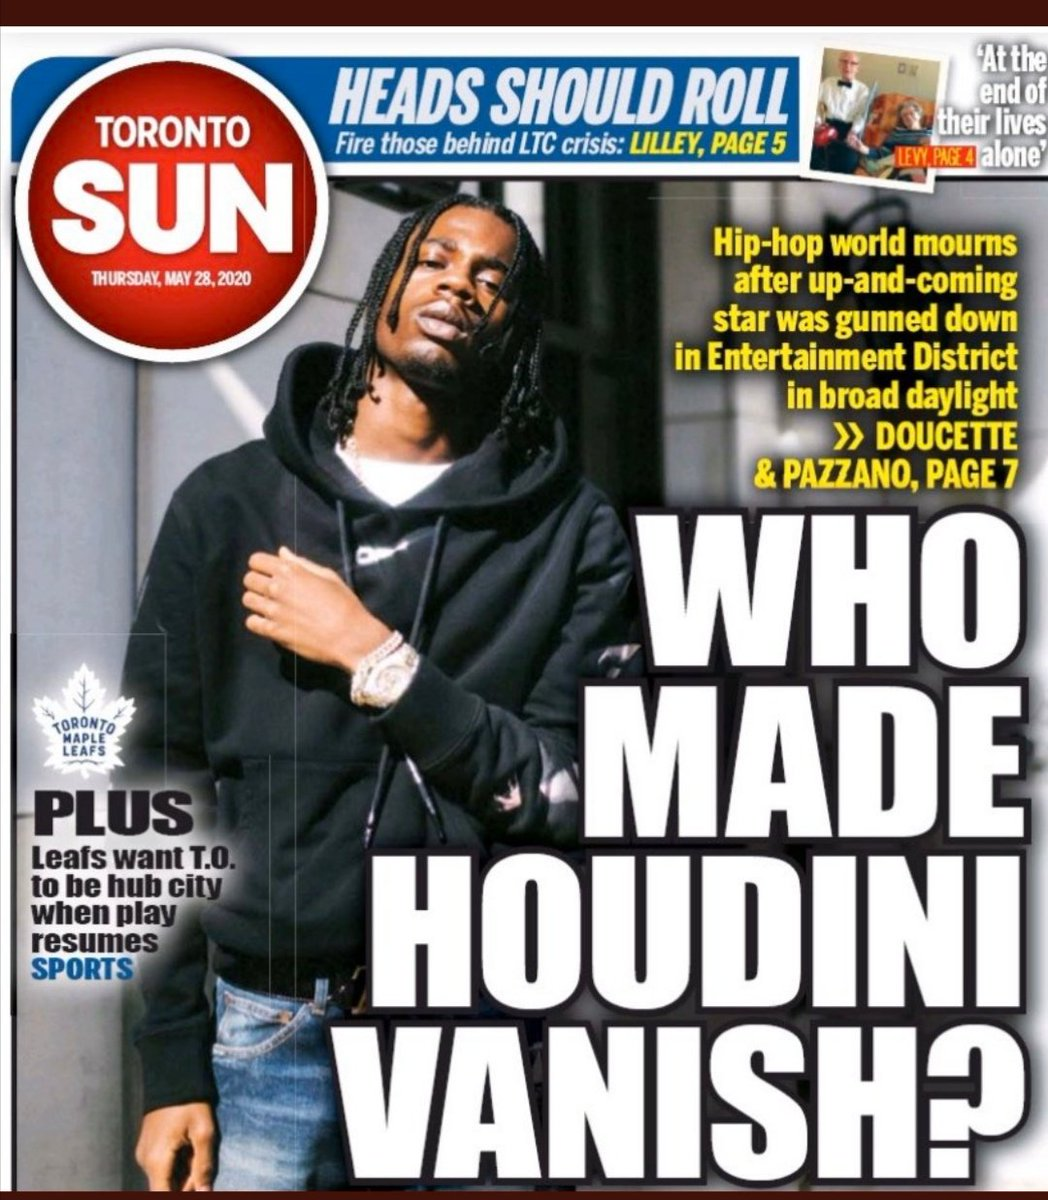 Often we as Canadian tend to point fingers at our neighbours to the South. Then this smacks us in the face today - how does that headline EVER reach print ? How would anyone EVER think that is tasteful and/or acceptable? We need to look in the mirror here  🇨🇦 @keeganj 🙏 https://t.co/pscgOQRWce https://t.co/5i0HDhABSd